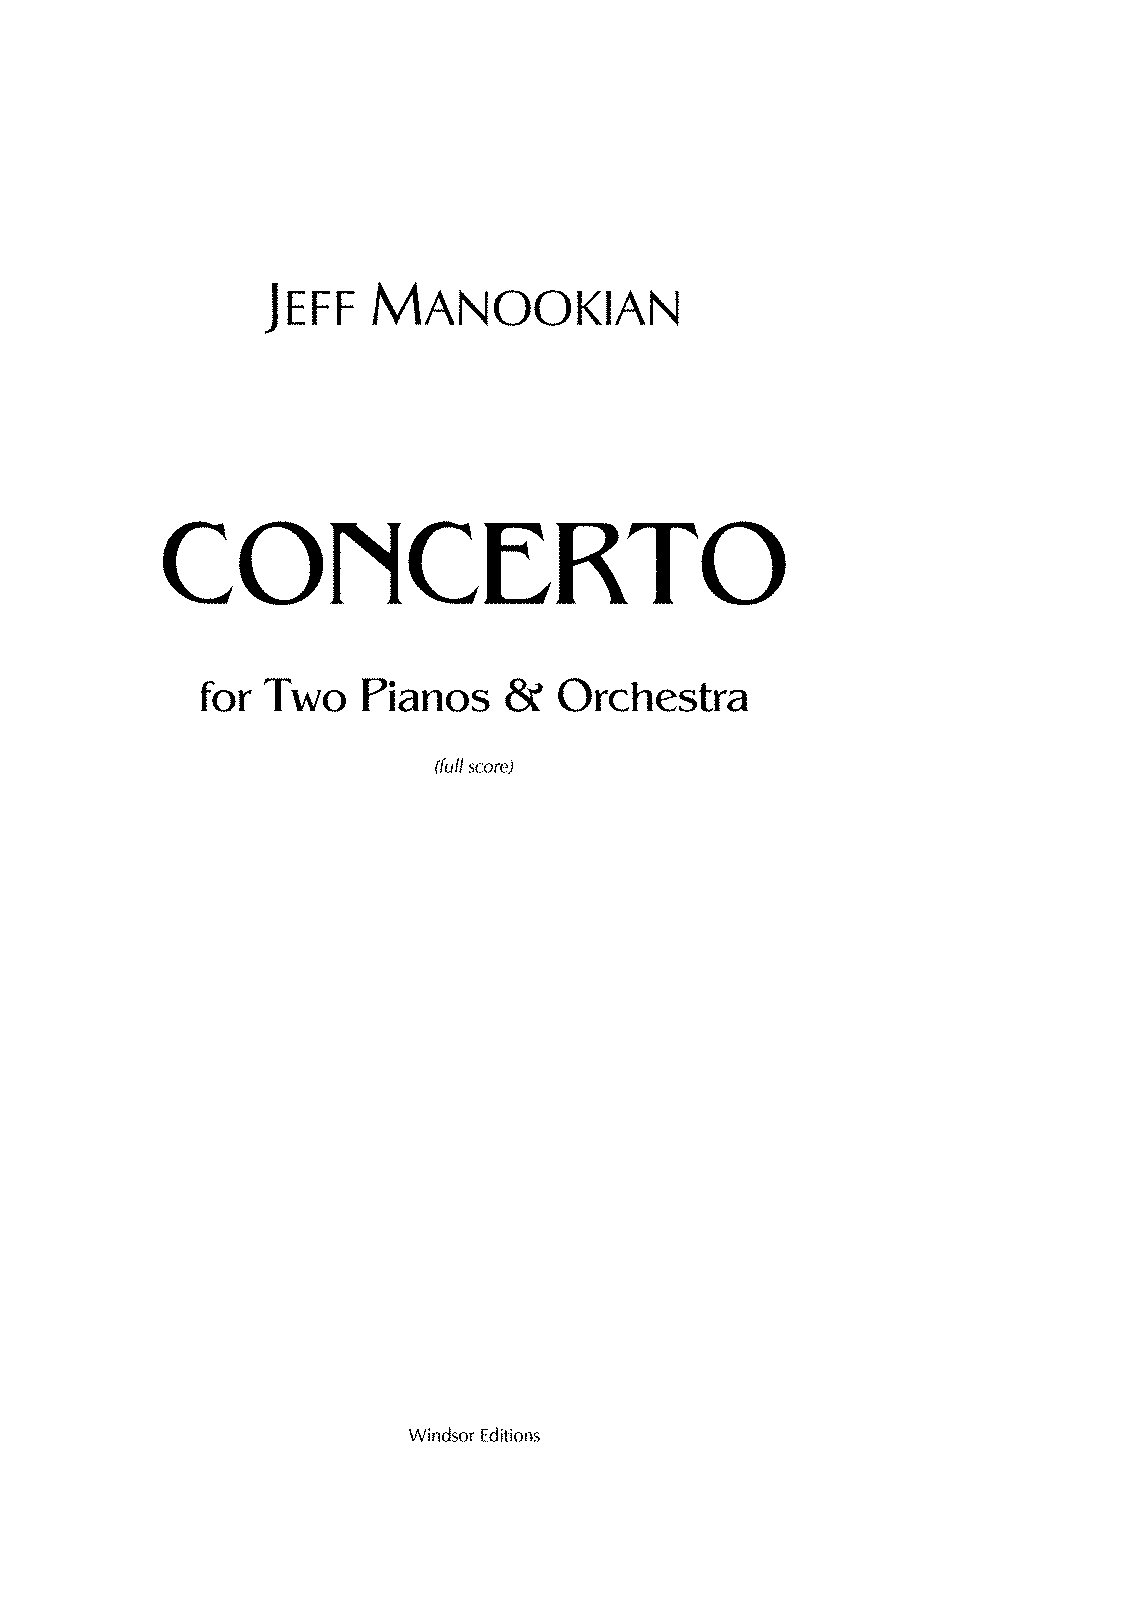 PMLP119247-2 piano concerto full score - 1st movement.pdf